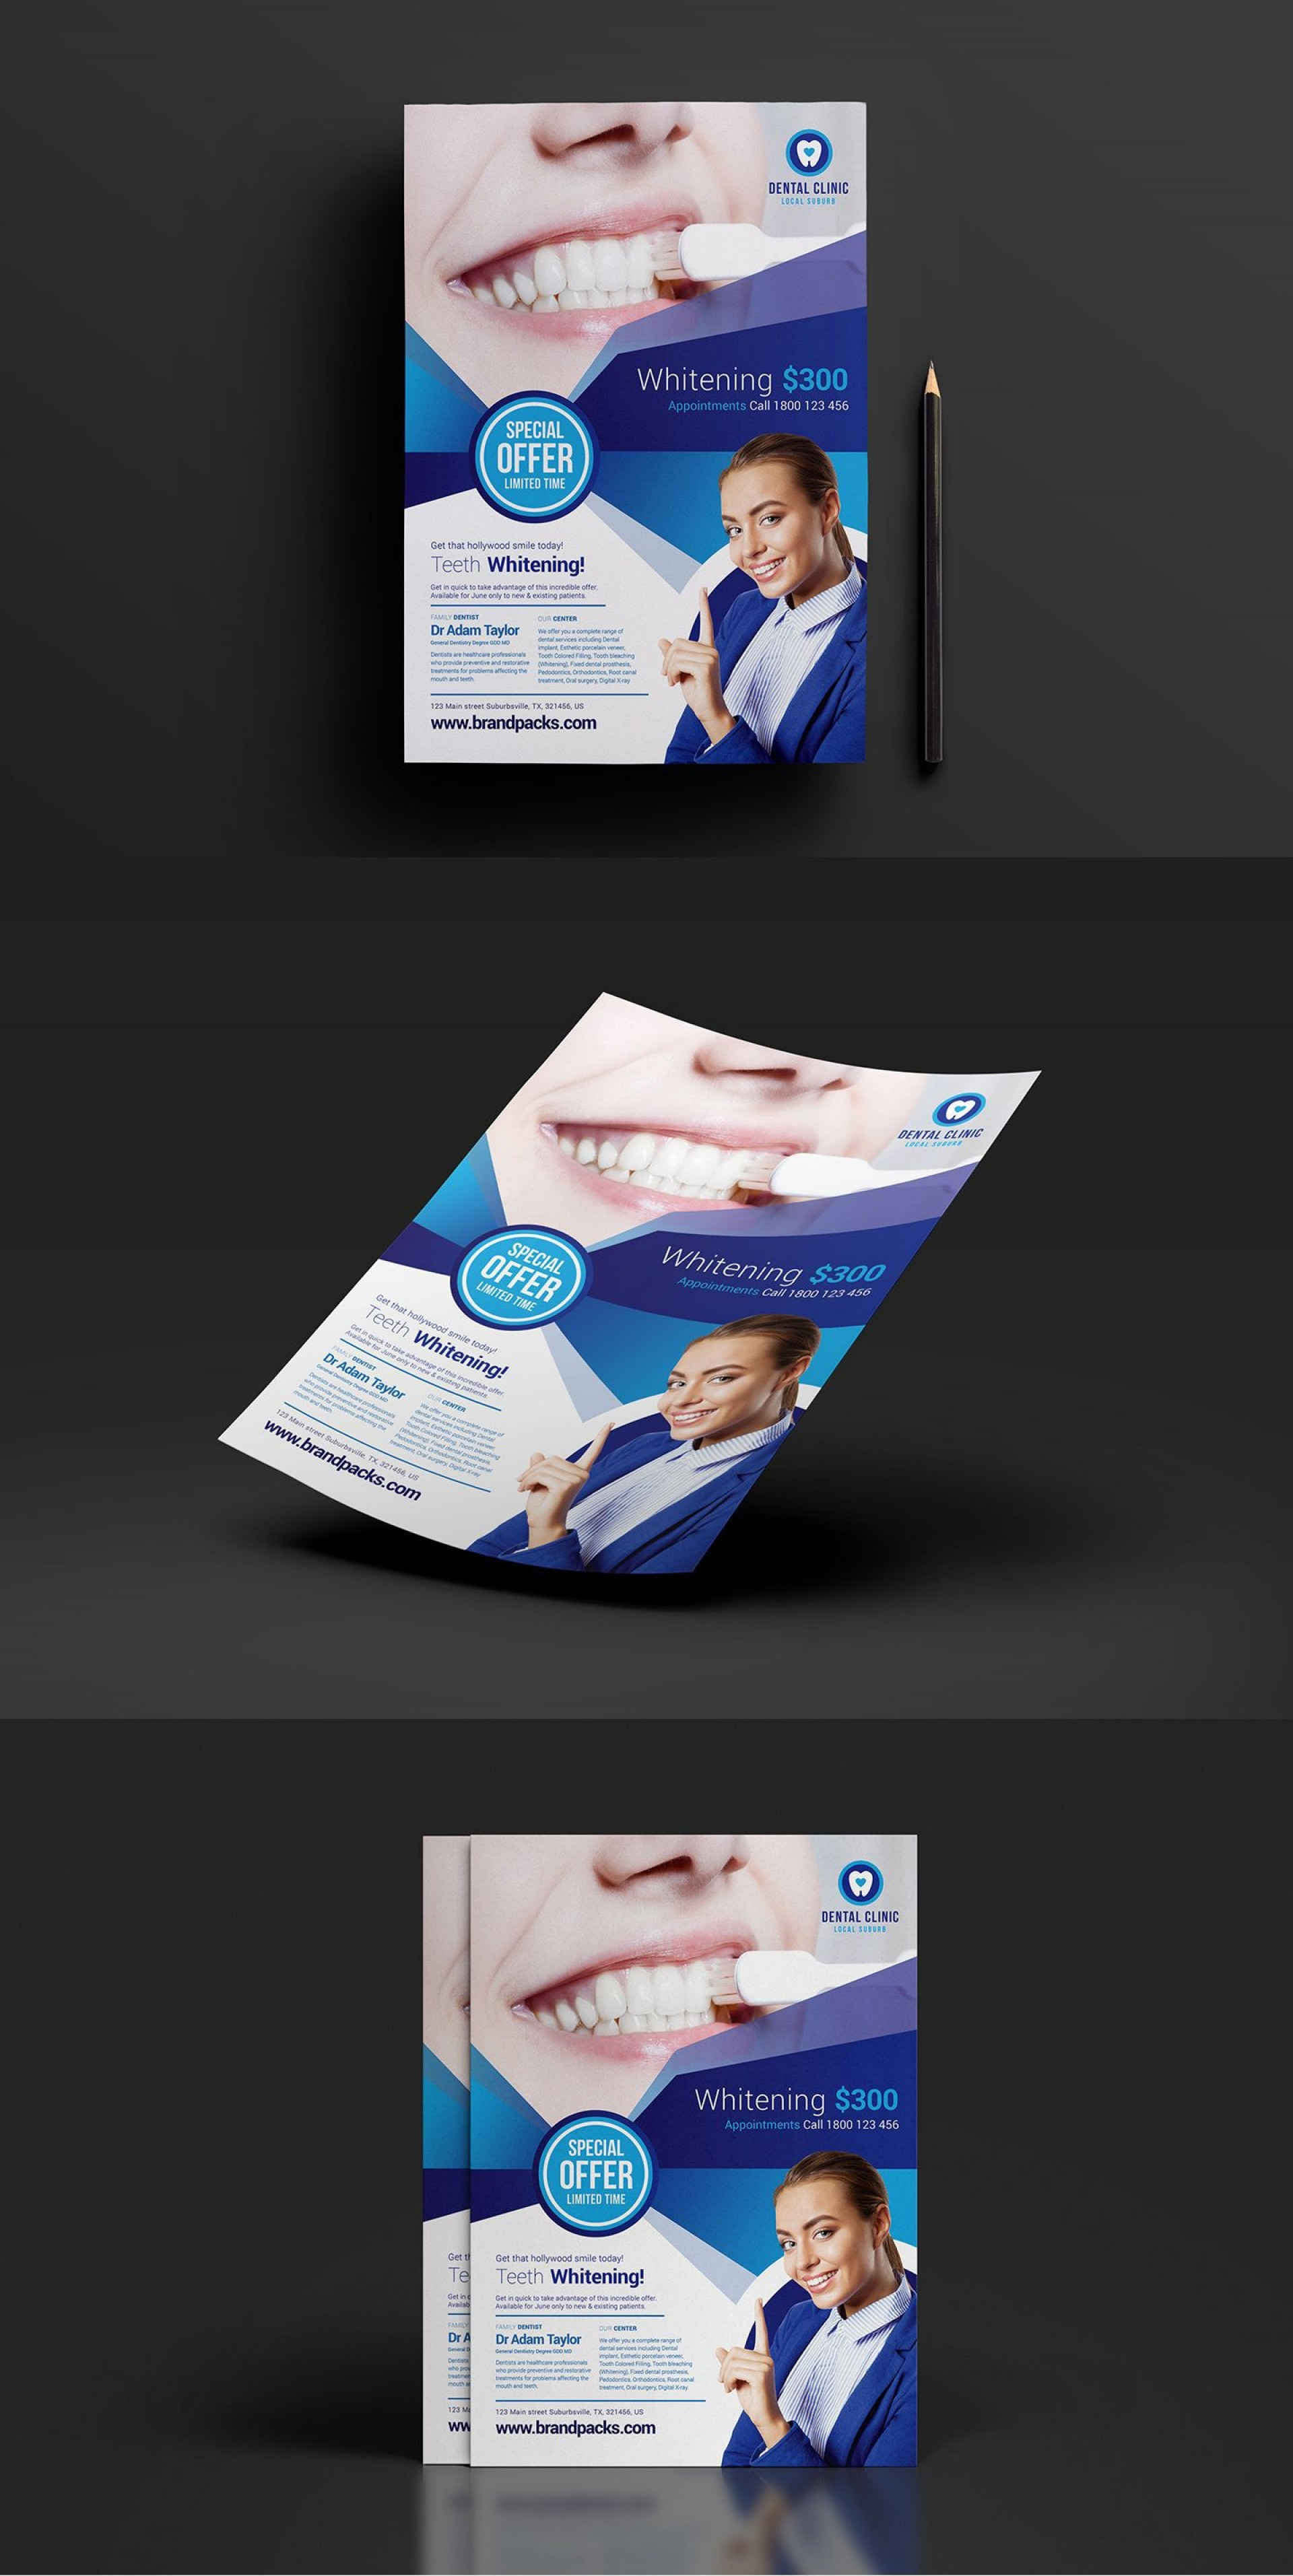 006 Unbelievable Free Print Ad Template Highest Quality  Templates Real Estate For Word1920